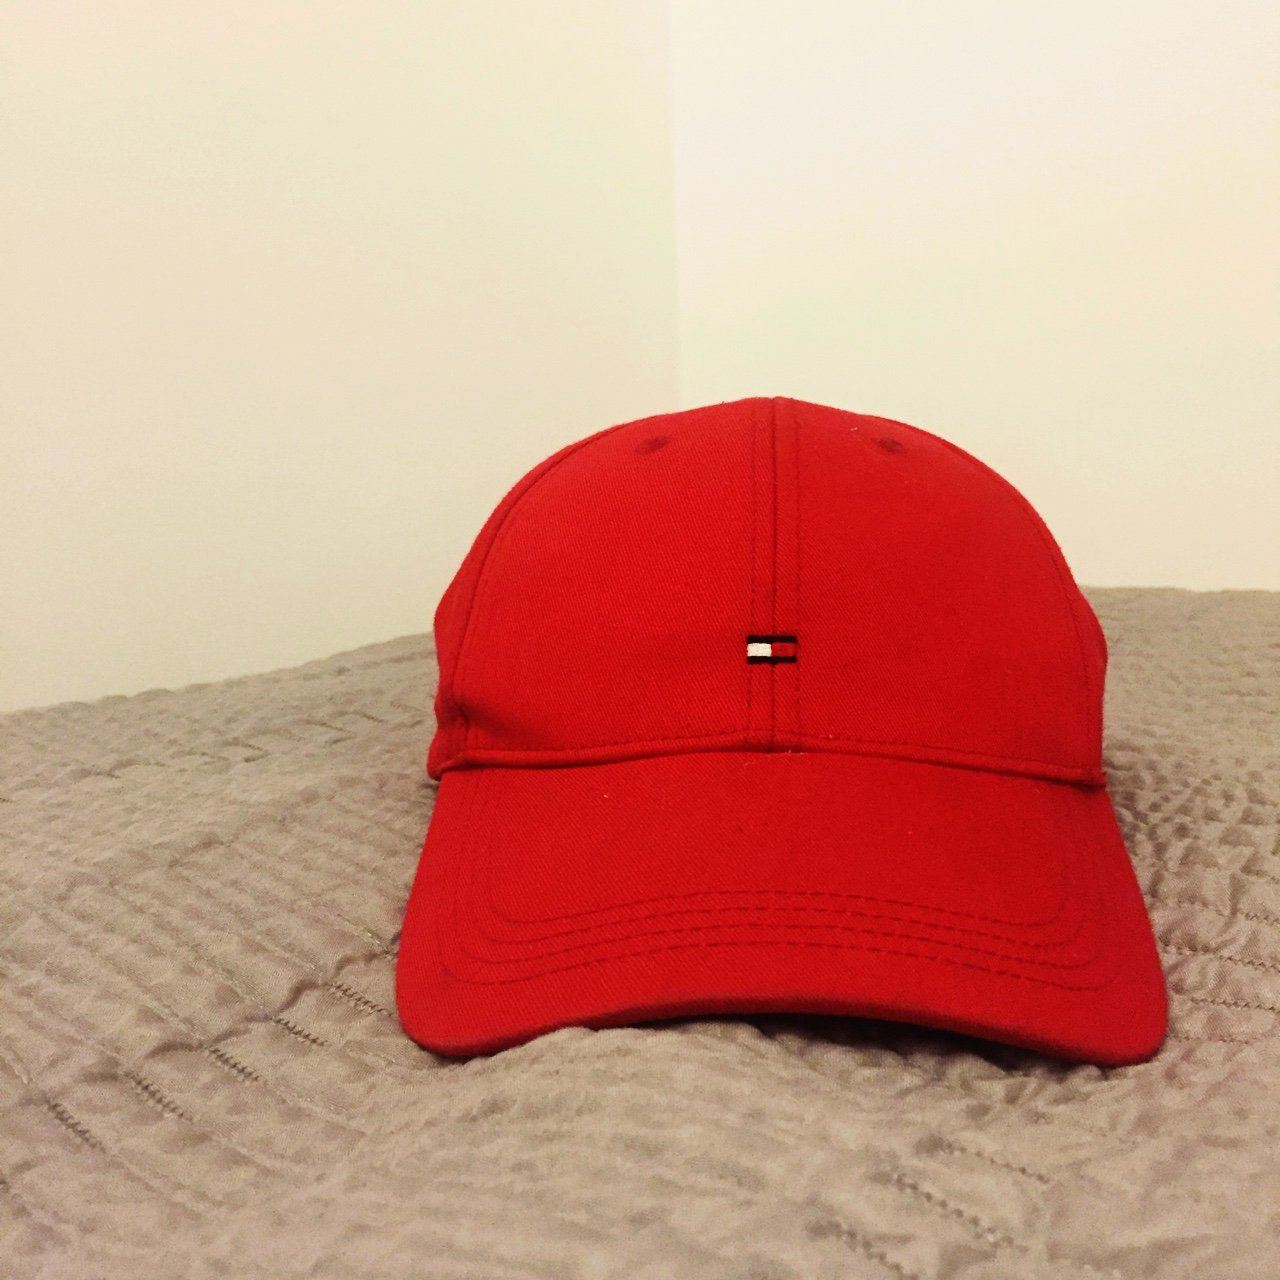 Tommy Hilfiger red cap. 9 10 condition no worn marks ---- - Depop 362c266a442